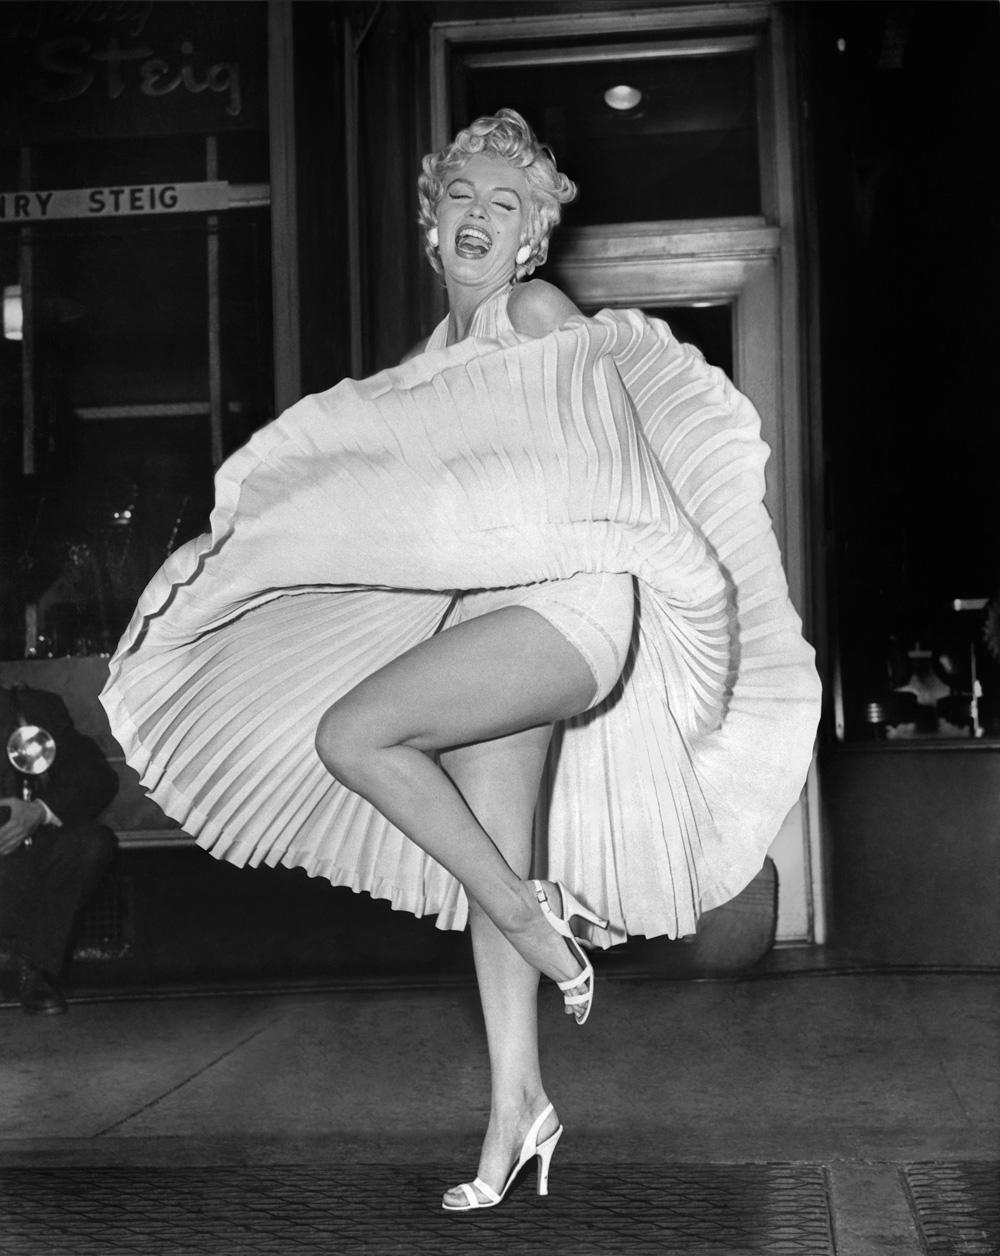 sam-shaw-marilyn-monroe-flying-skirt-6